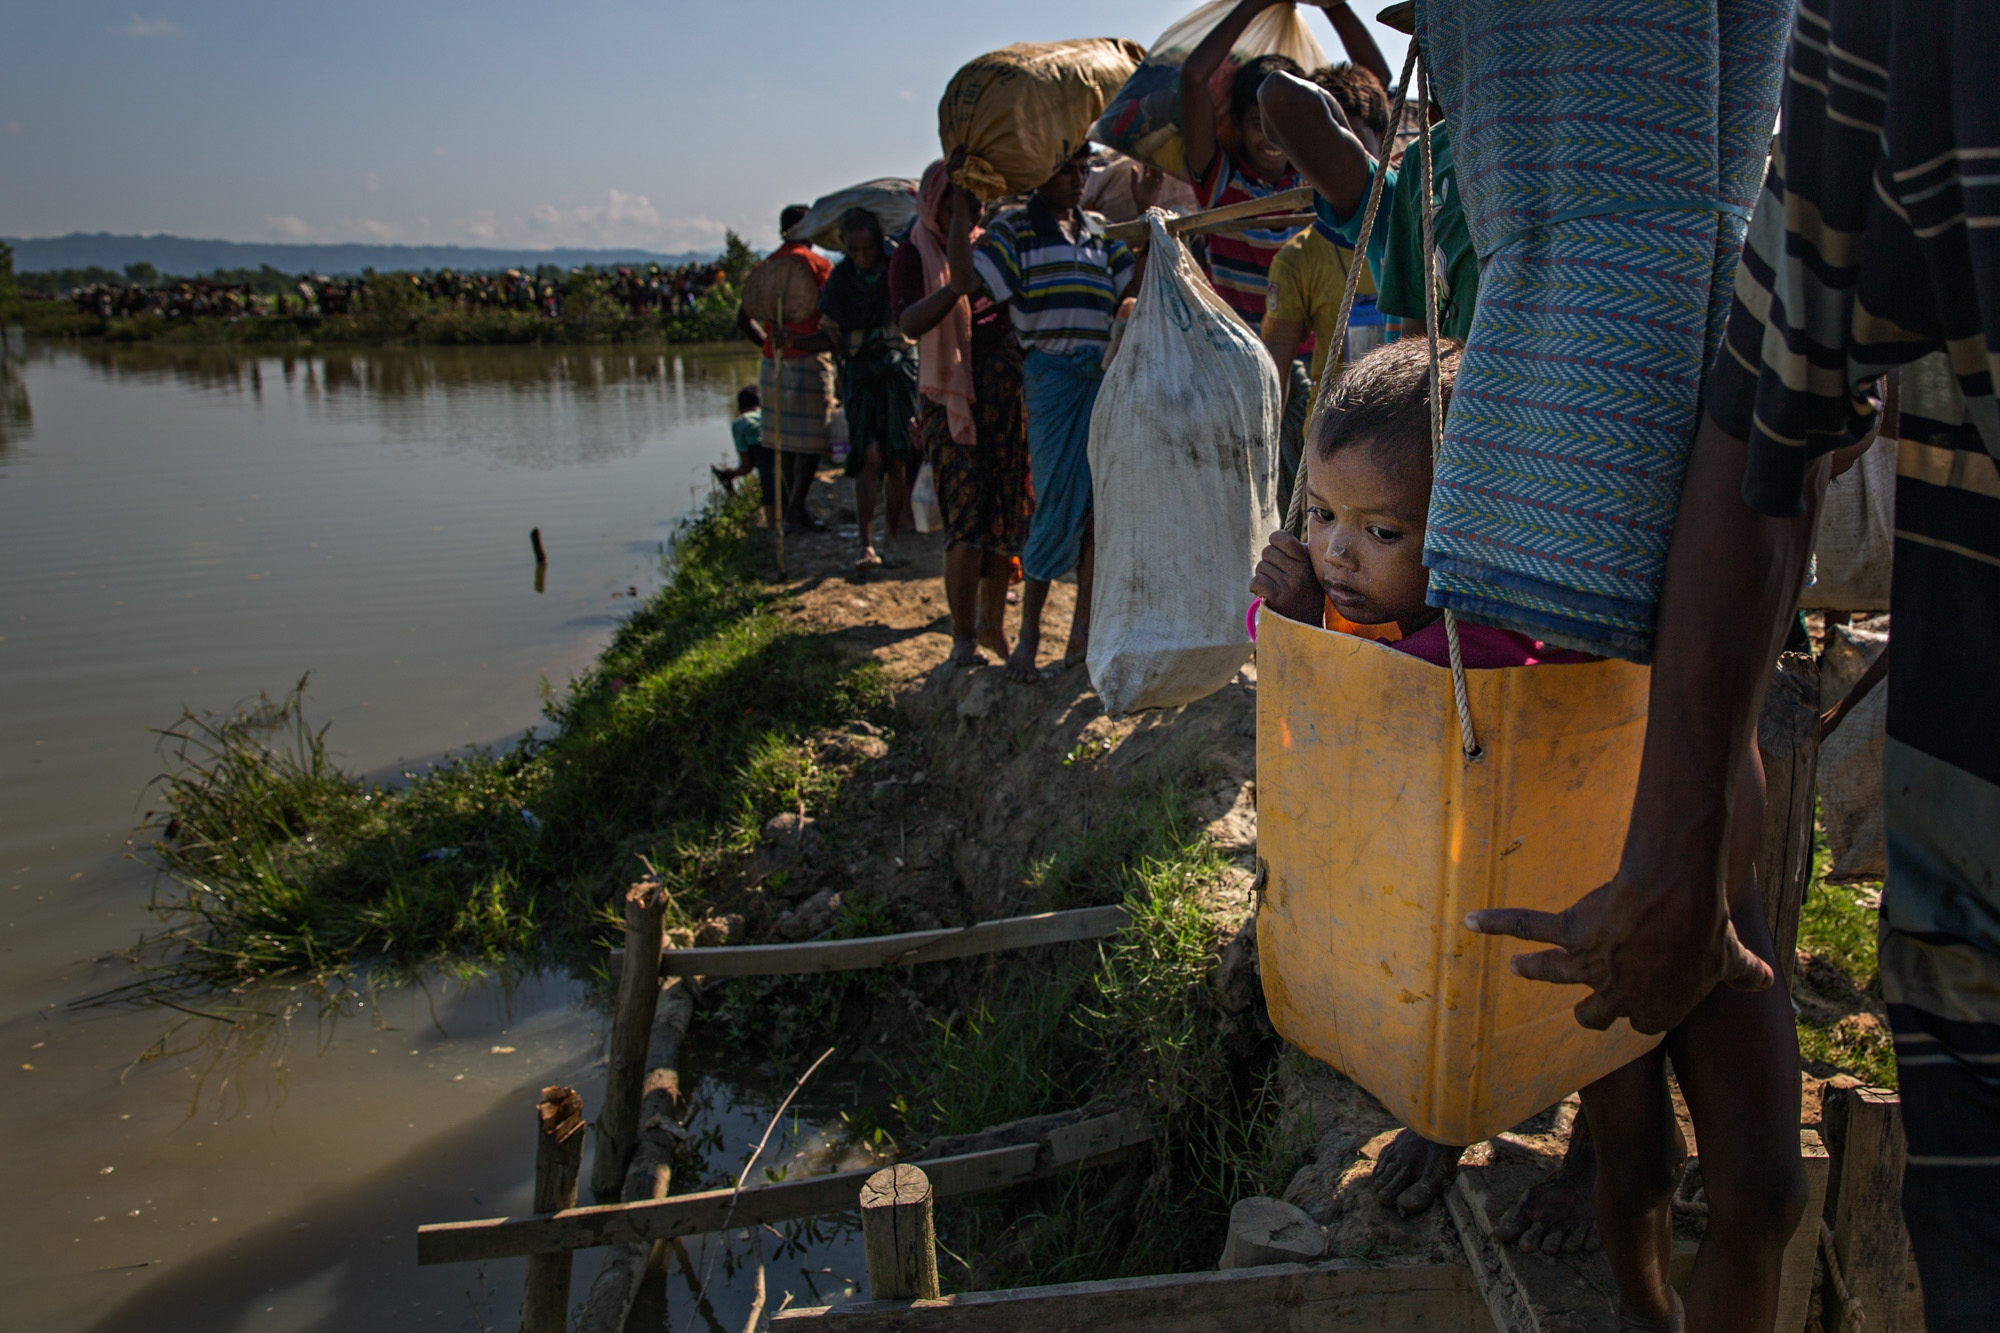 A Rohingya child is carried in a bucket along a muddy path in a rice paddy field immediately after crossing the Naf River, from Myanmar into Bangladesh. The journey took many families a week or more and the very young and very old often had to be carried in whatever way possible.